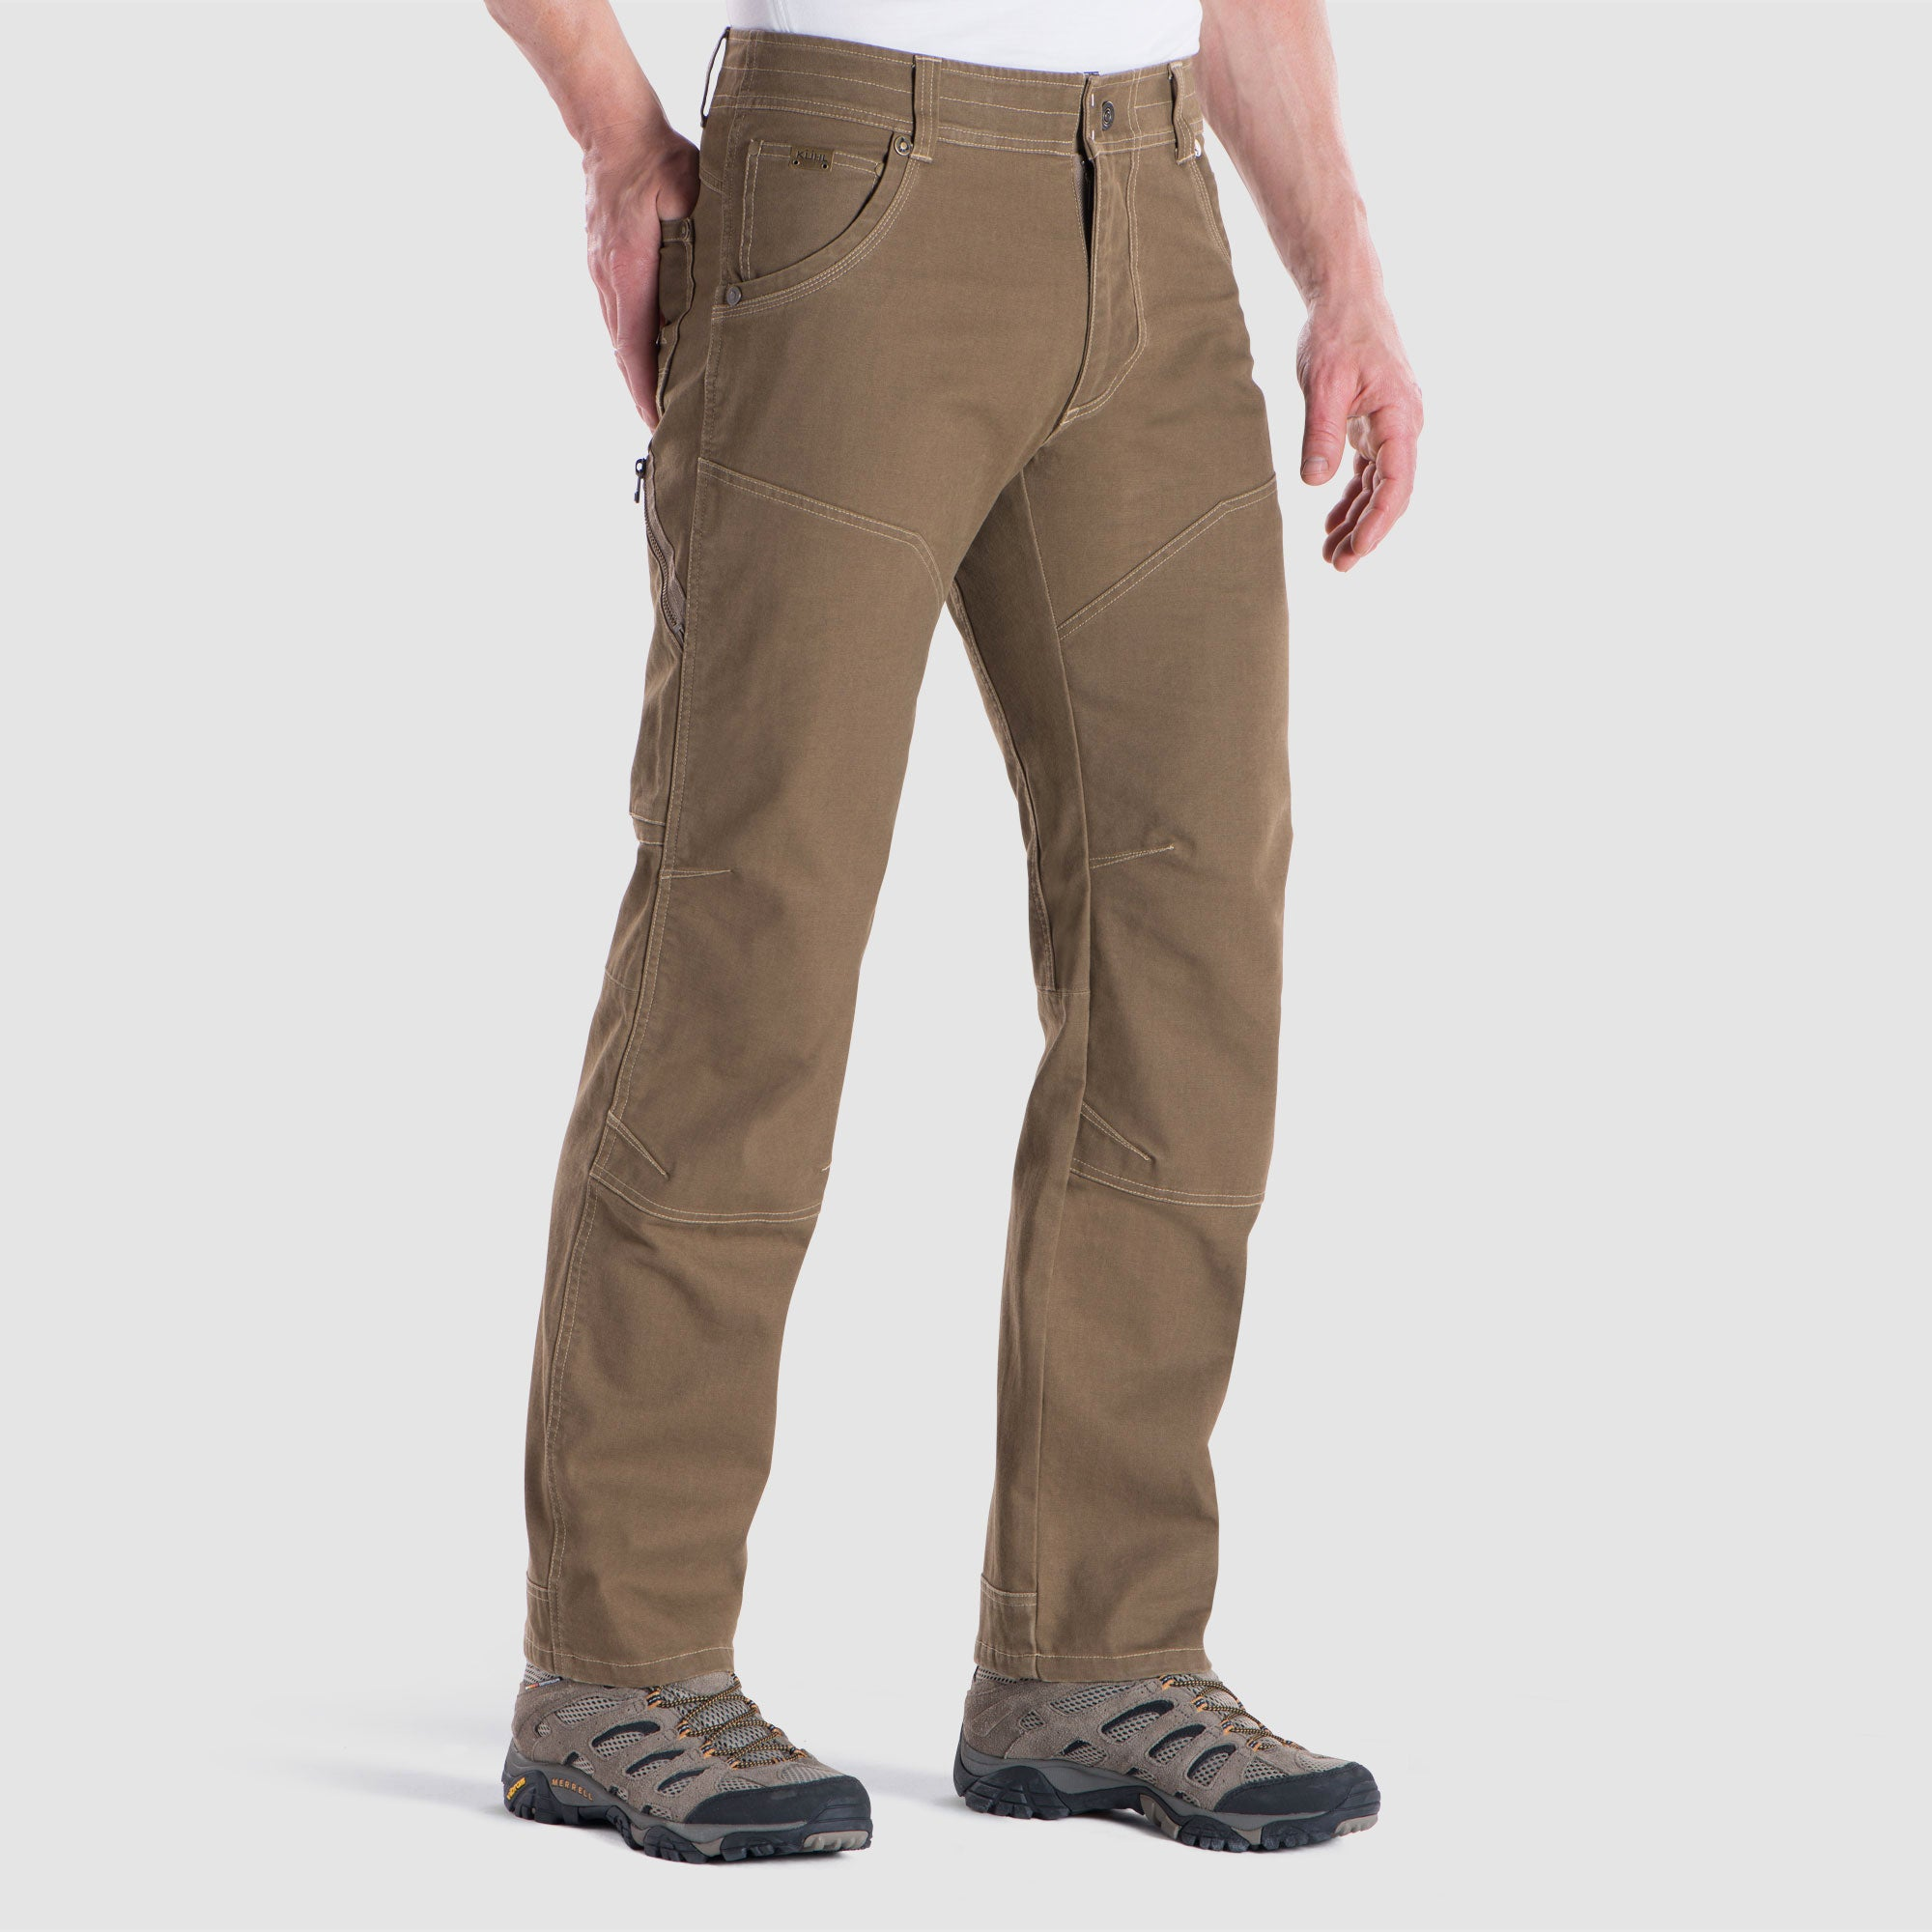 'Kuhl' Men's The Law Pants - Dark Khaki